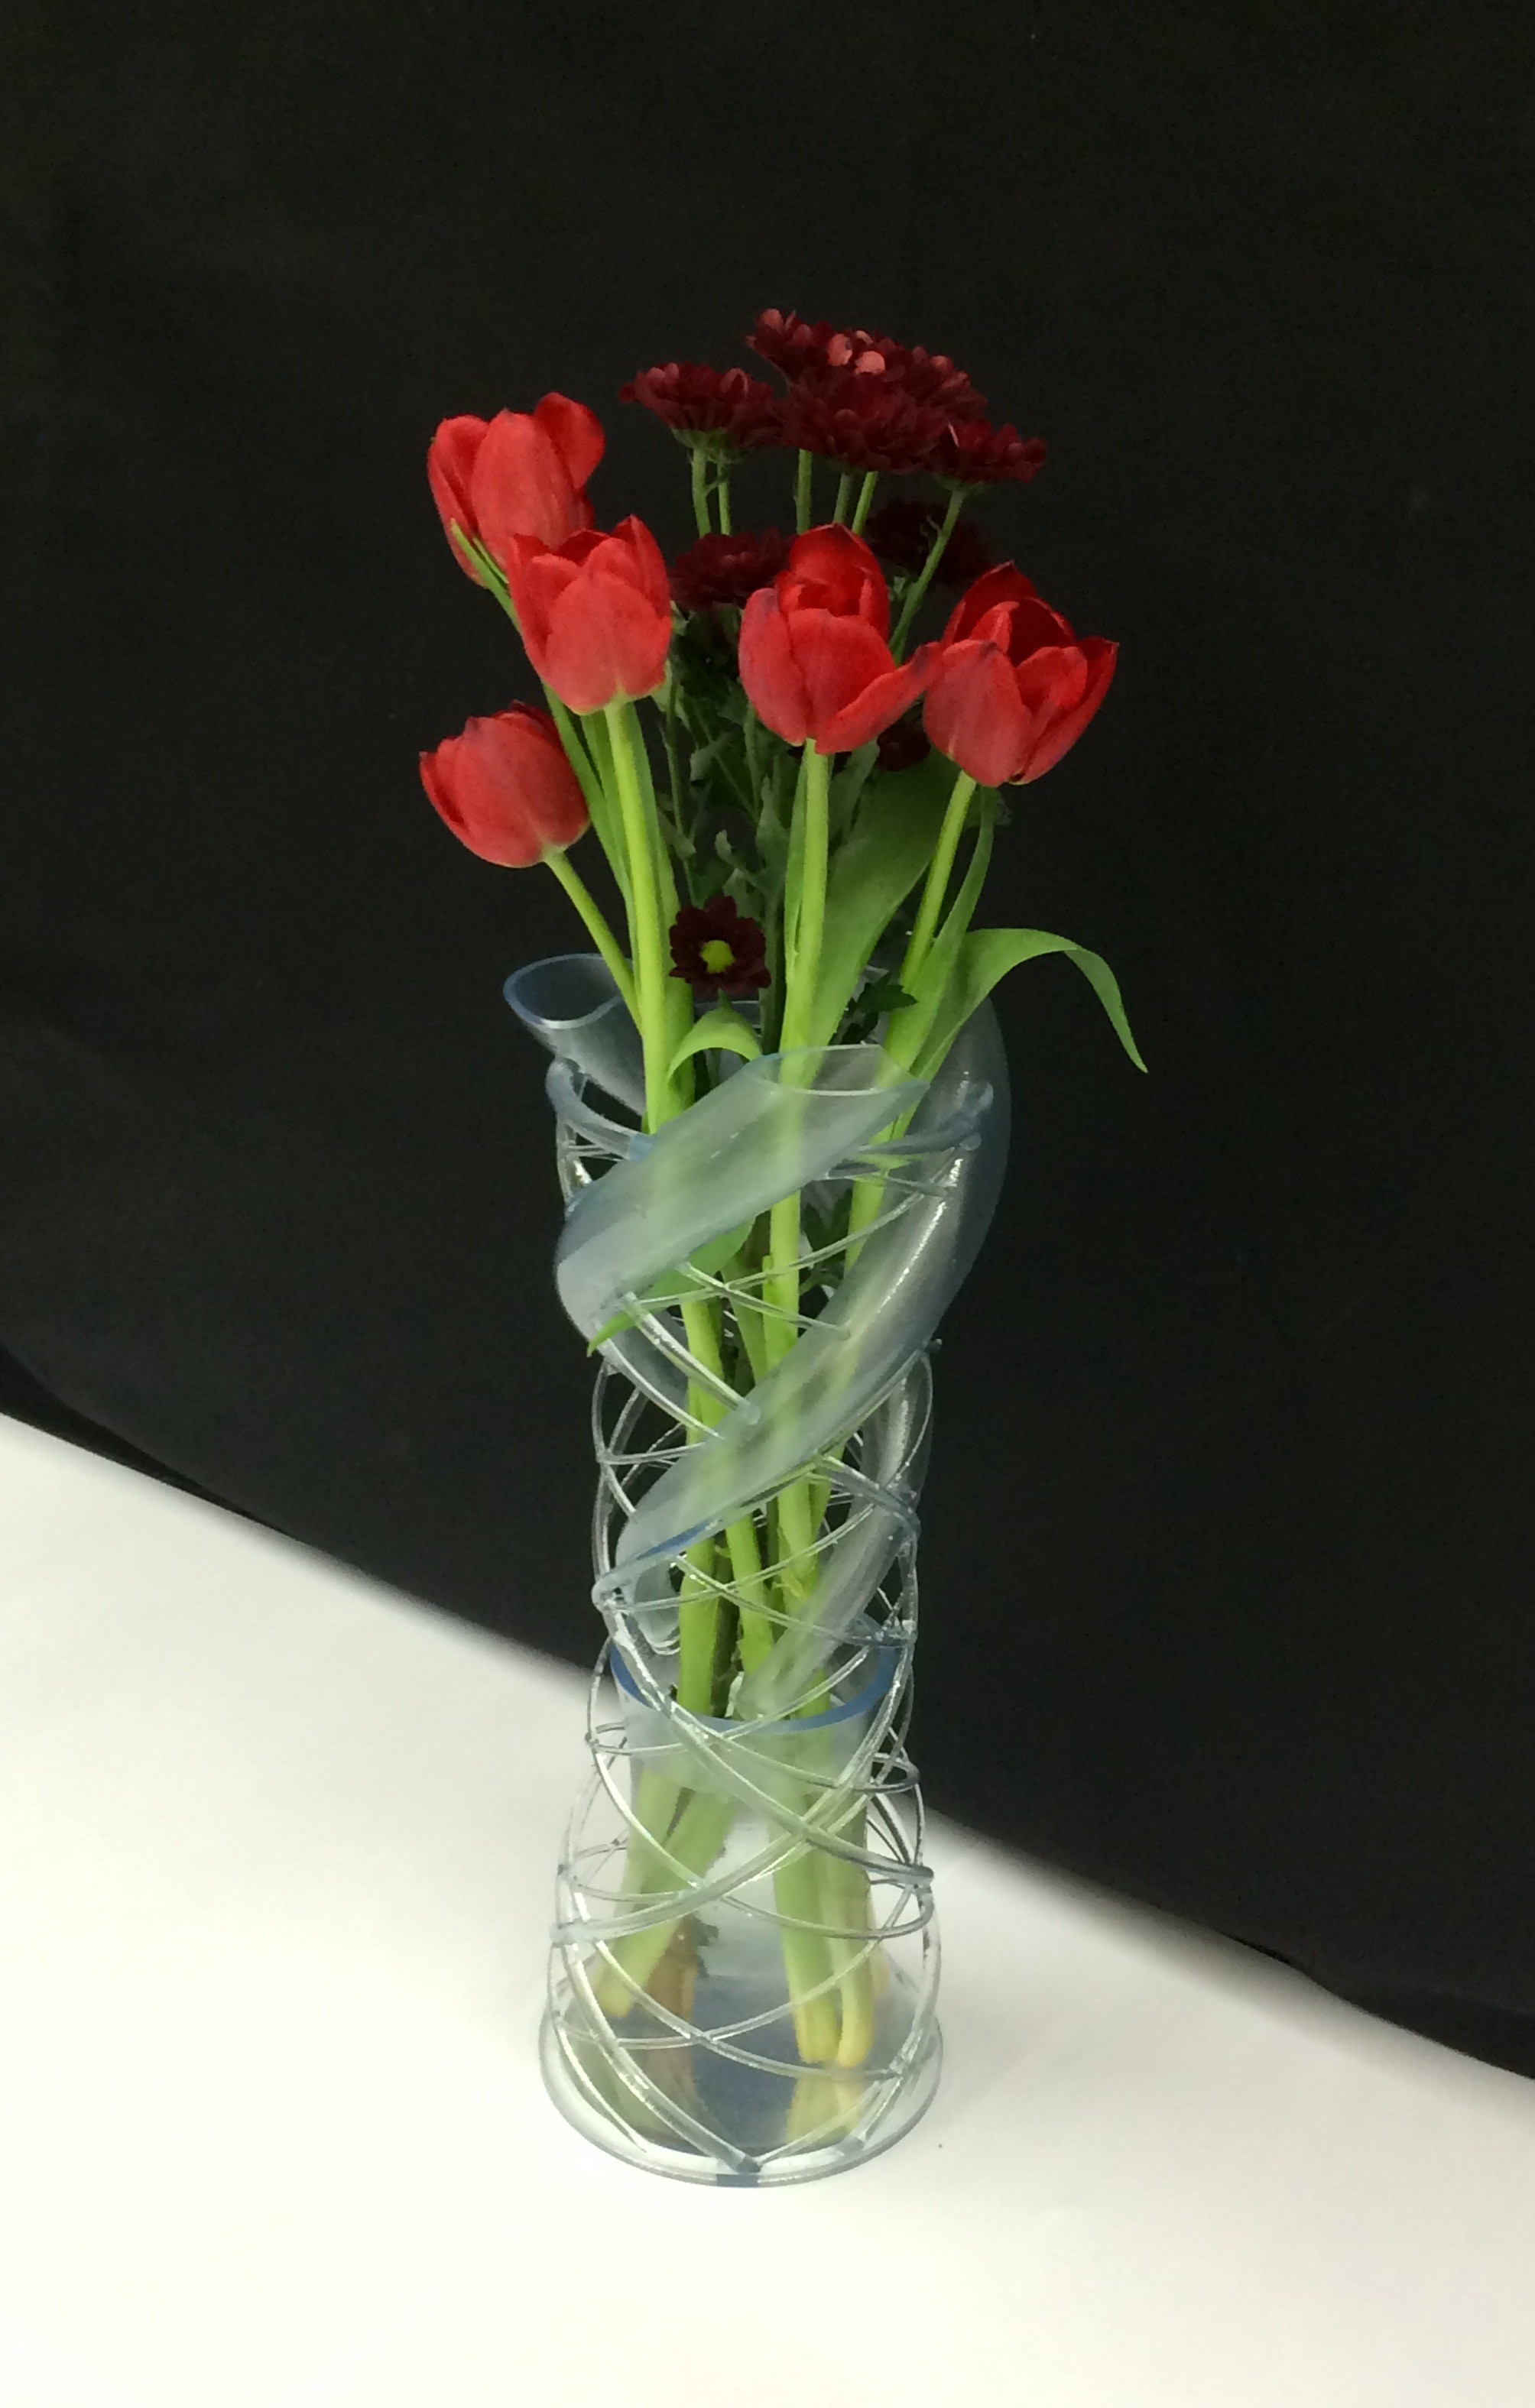 Unique 3d Printed Intertwine Vase Design Is Inspired By Dna And Leaf Patterns 3dprint Com